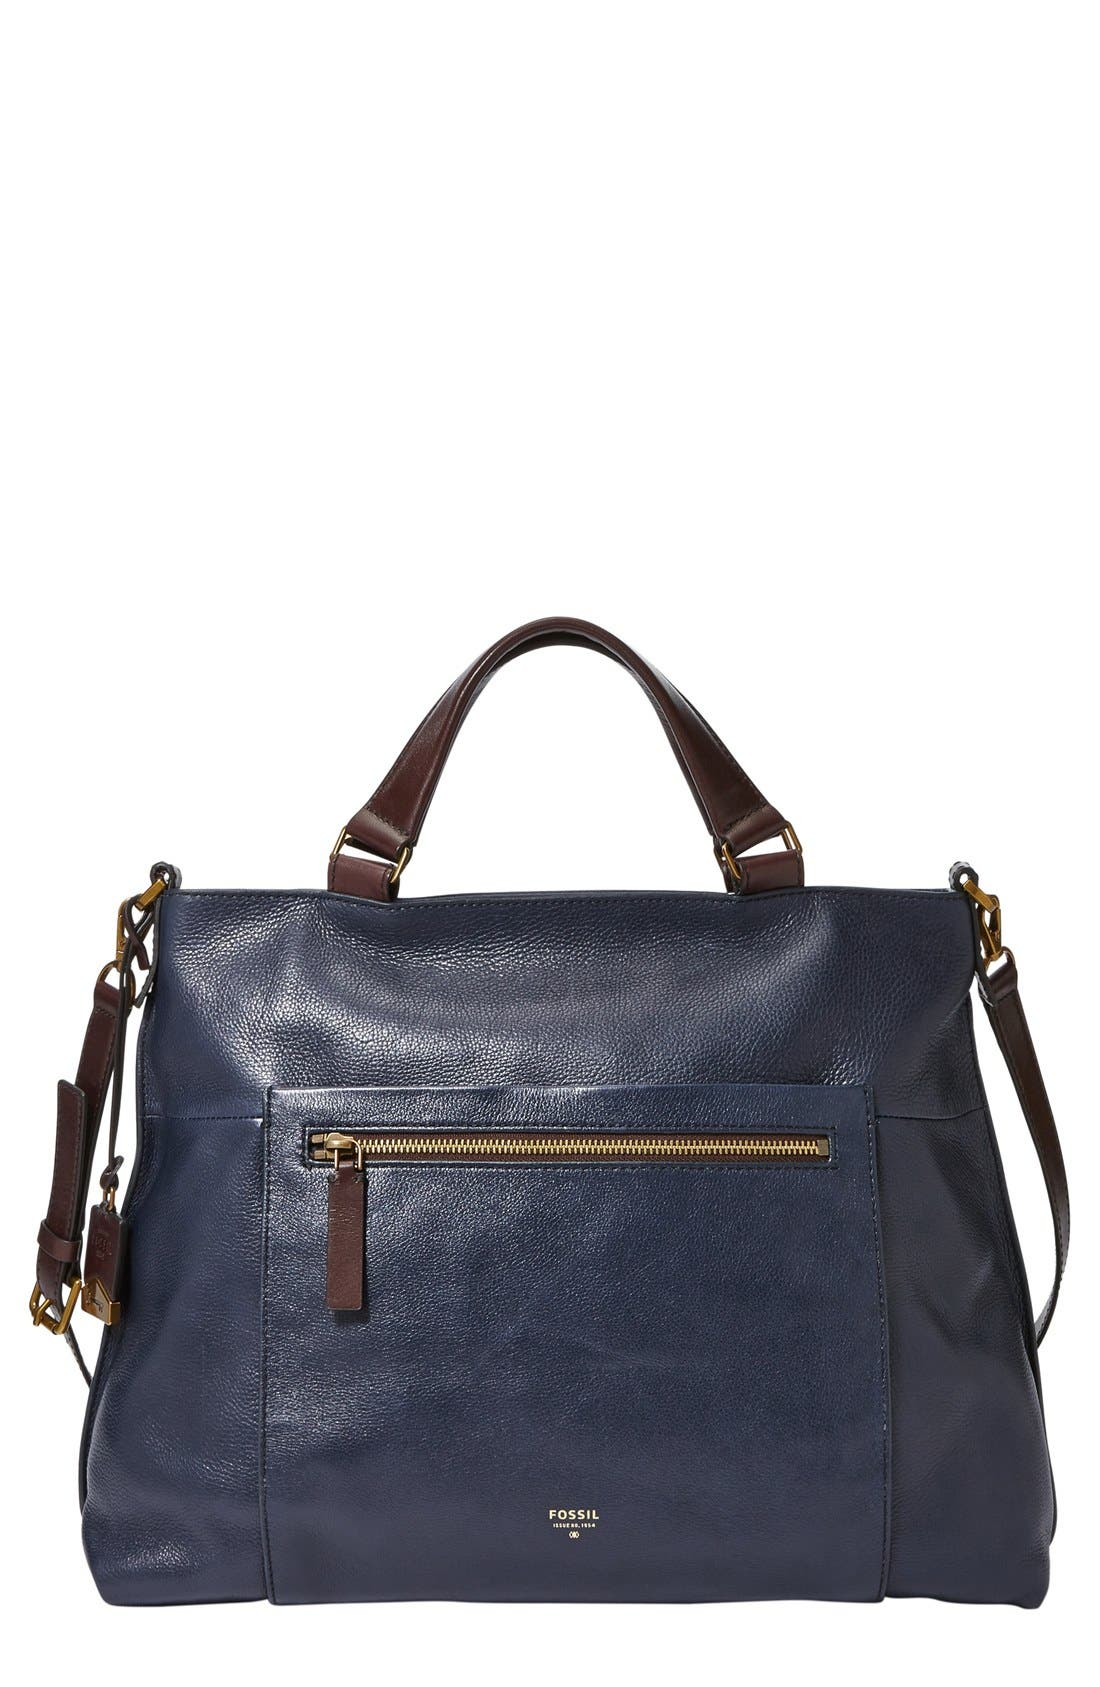 Alternate Image 1 Selected - Fossil 'Vickery' Leather Crossbody Bag